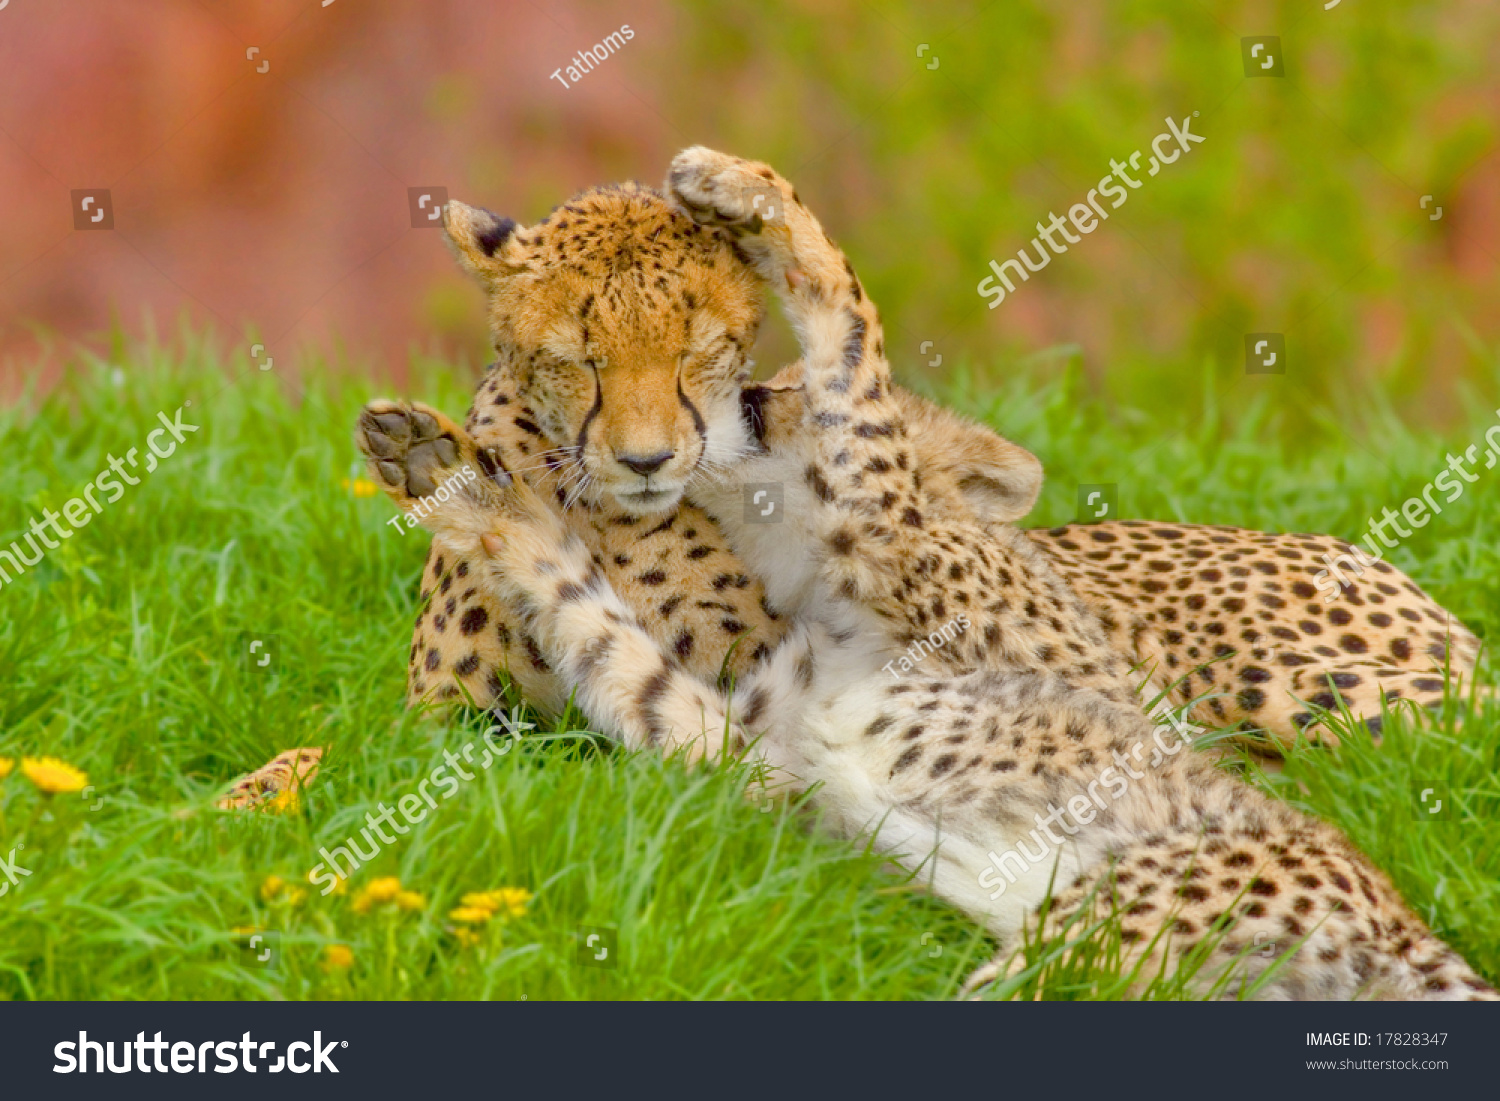 stock-photo-i-love-my-mommy-cheetah-cub-